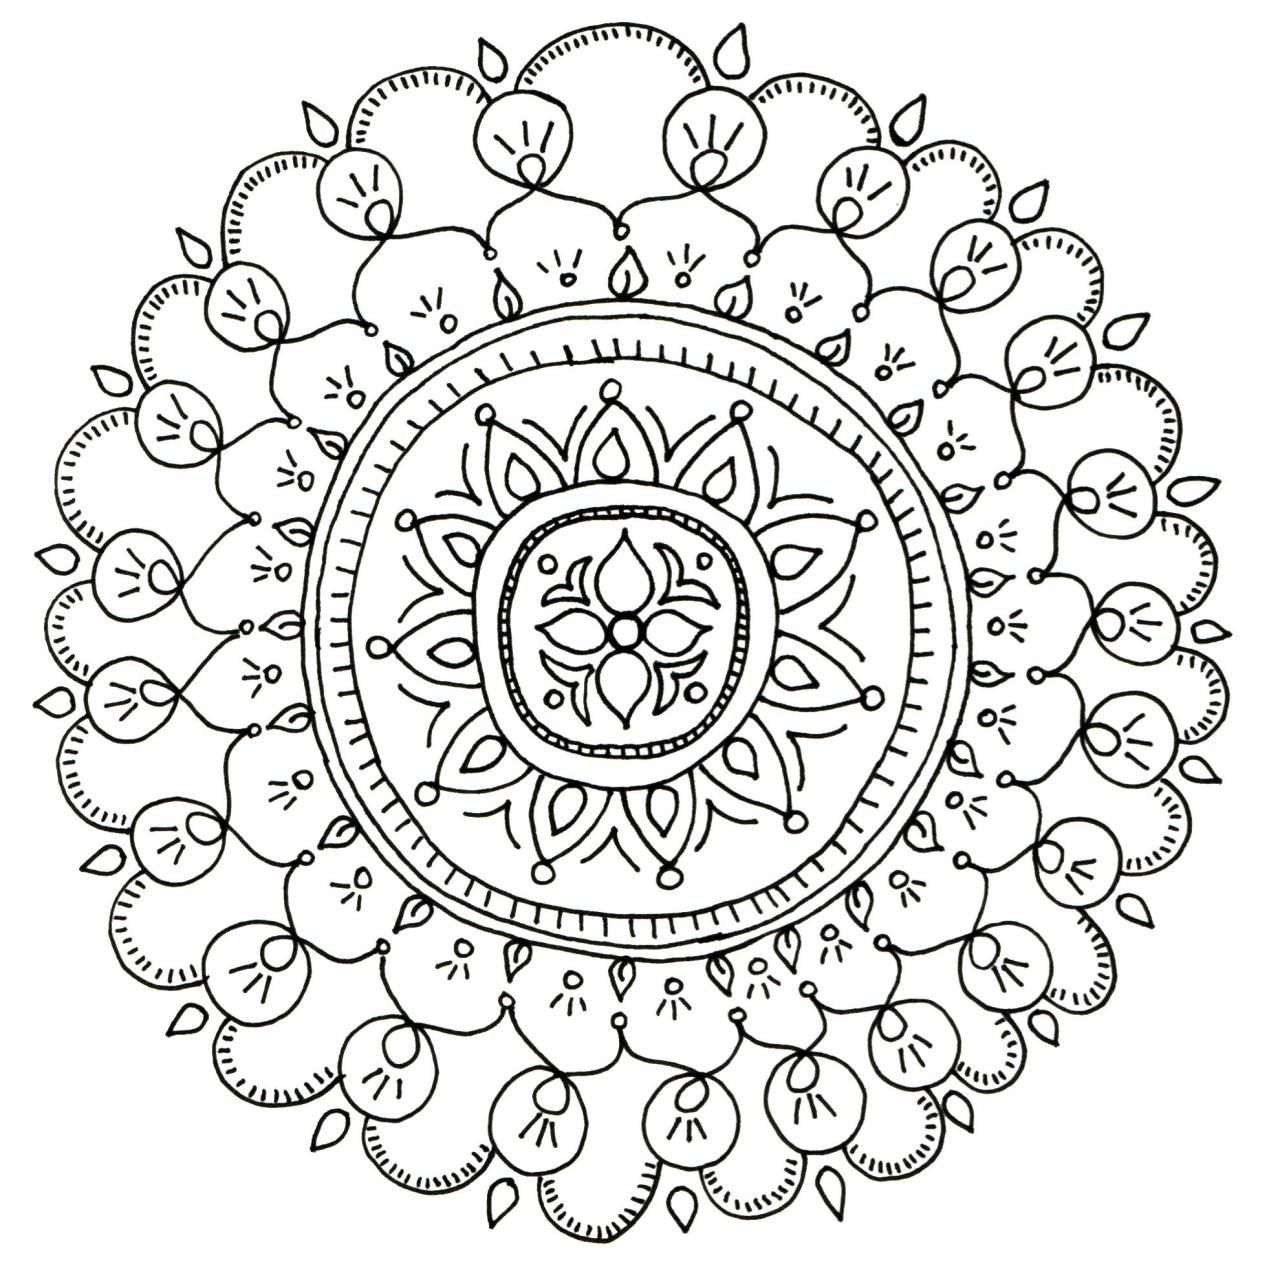 Adult coloring pages free printables mandala - Free Printable Coloring Pages For Adults